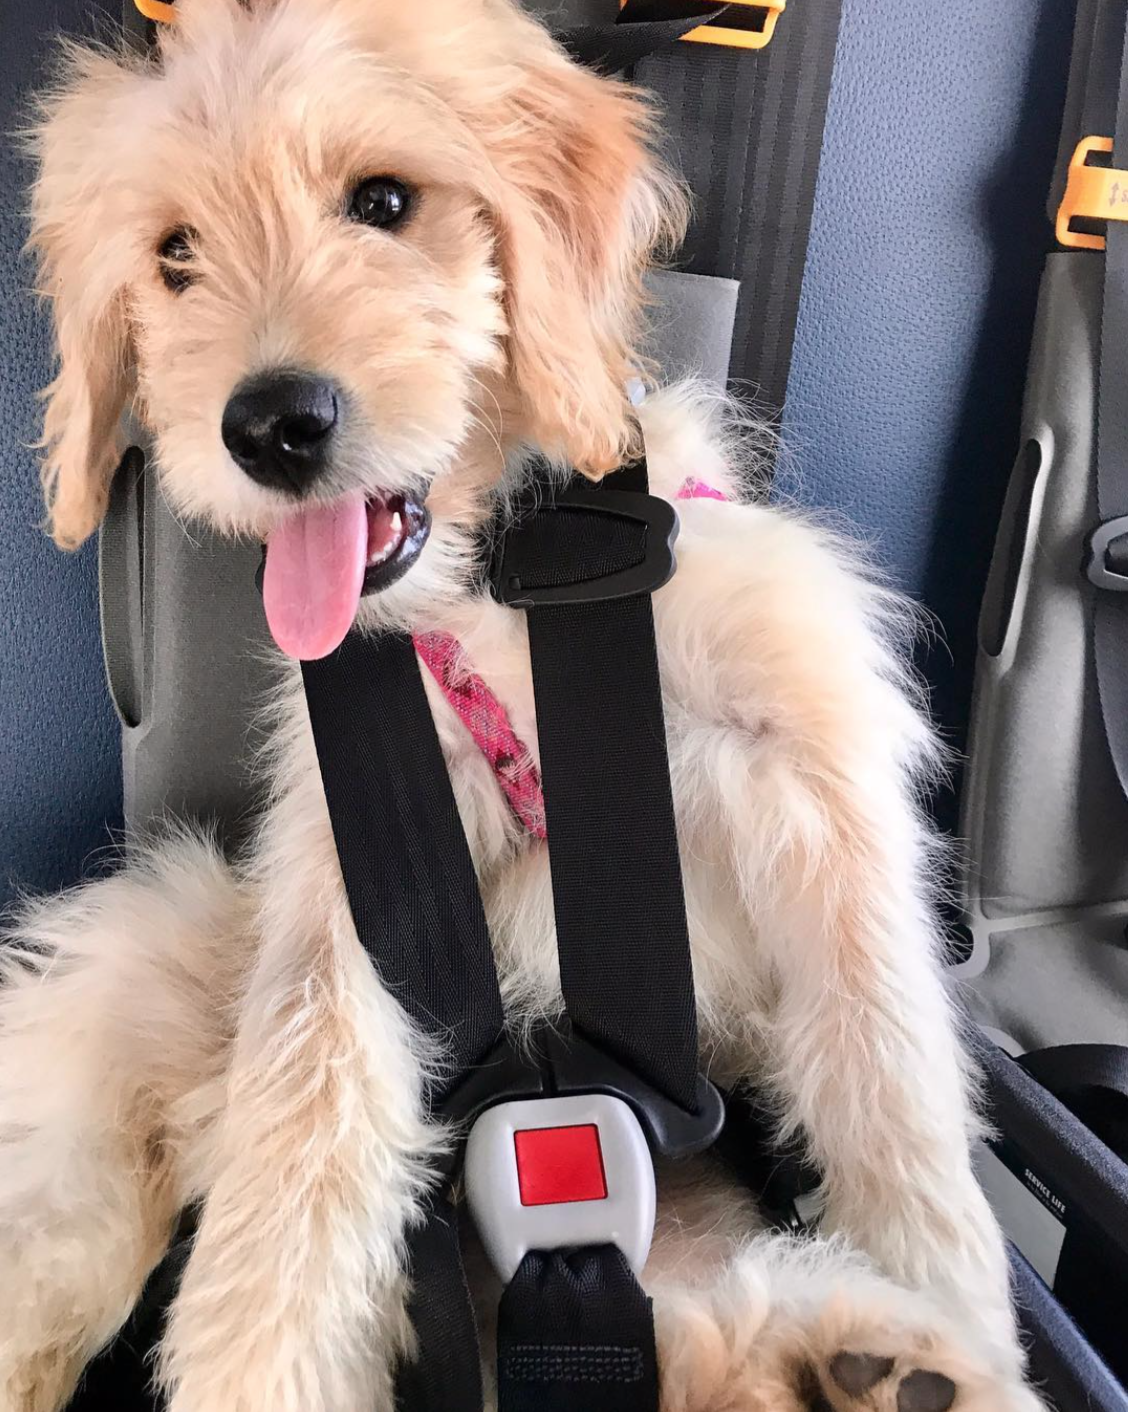 Golden doodle puppy with seatbelt on